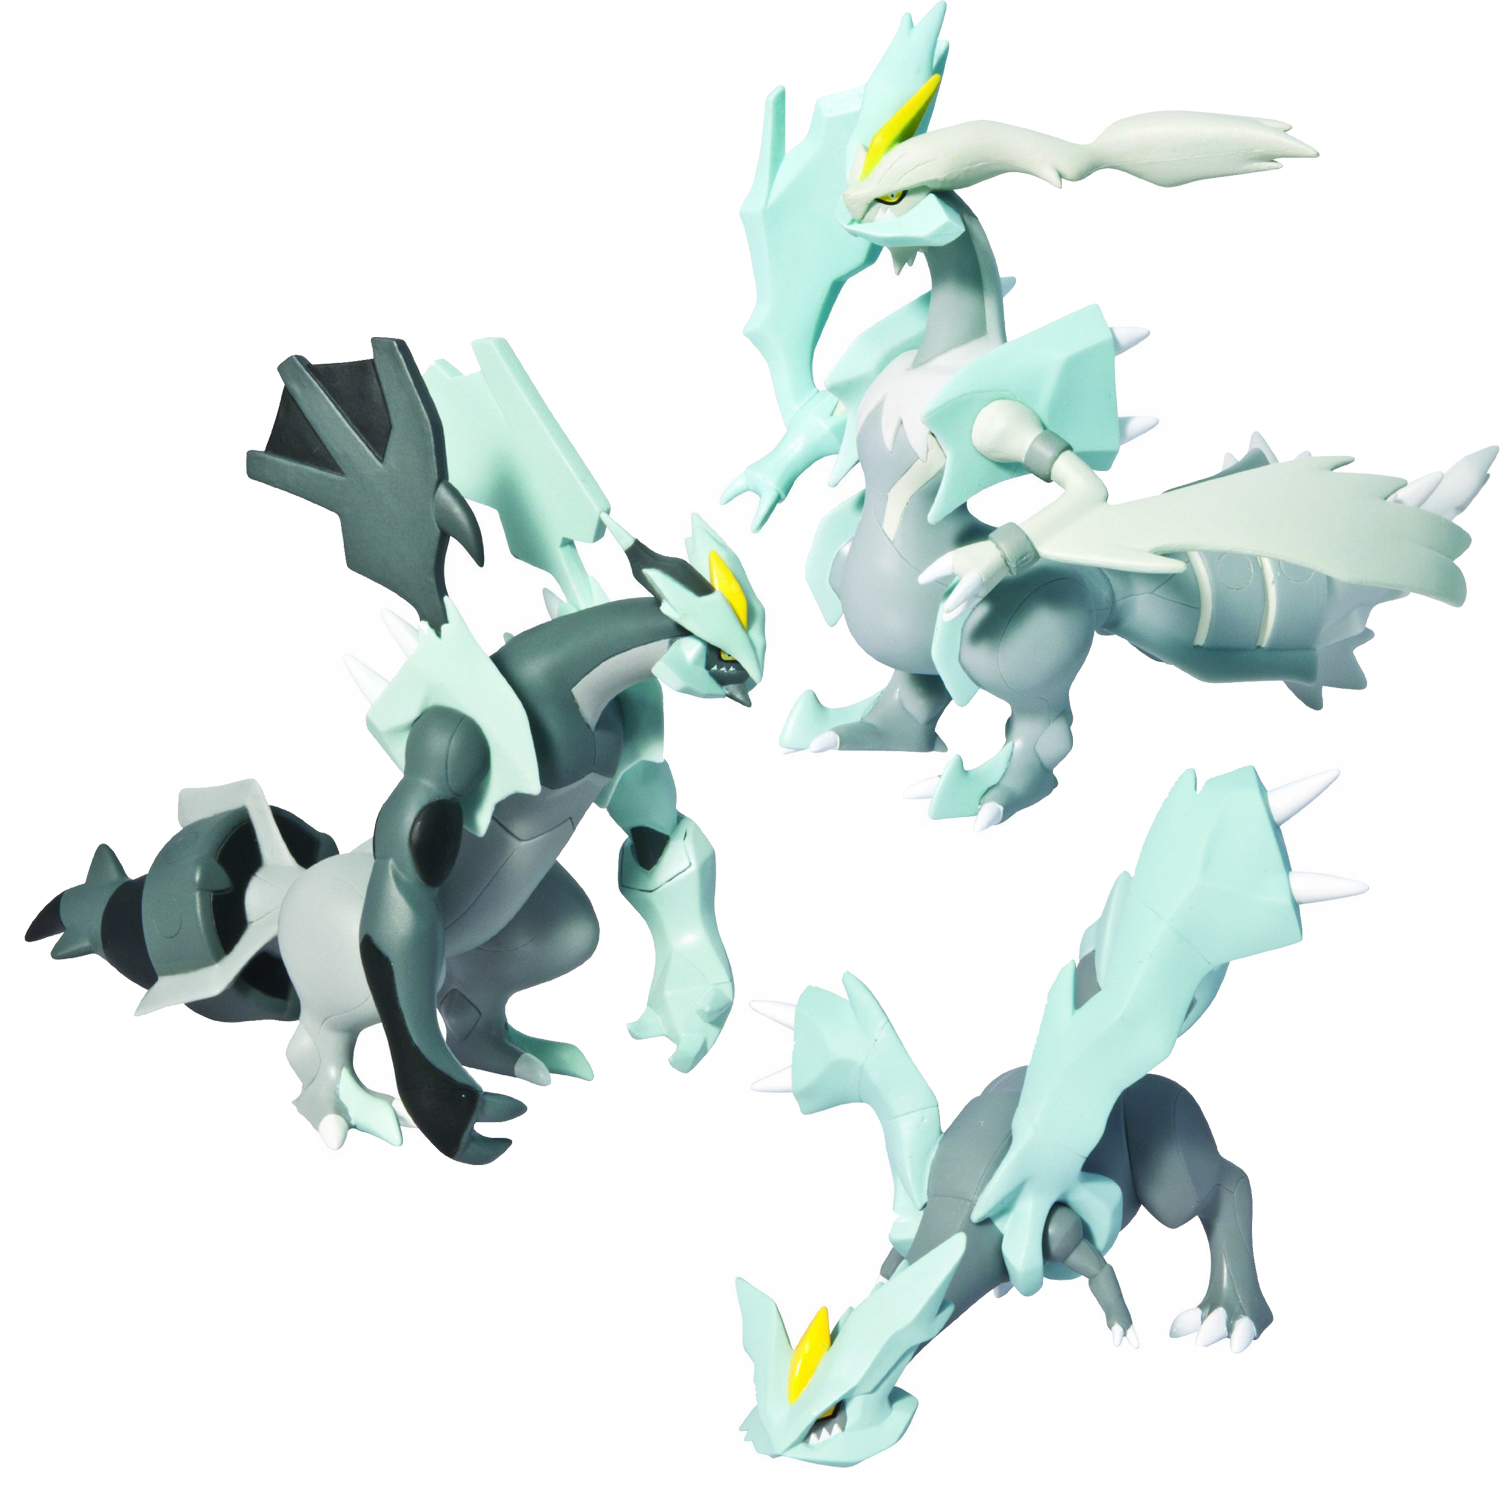 Pokemon Toys - 7 Inch Articulated Kyurem at ToyStop | 1500 x 1500 jpeg 599kB